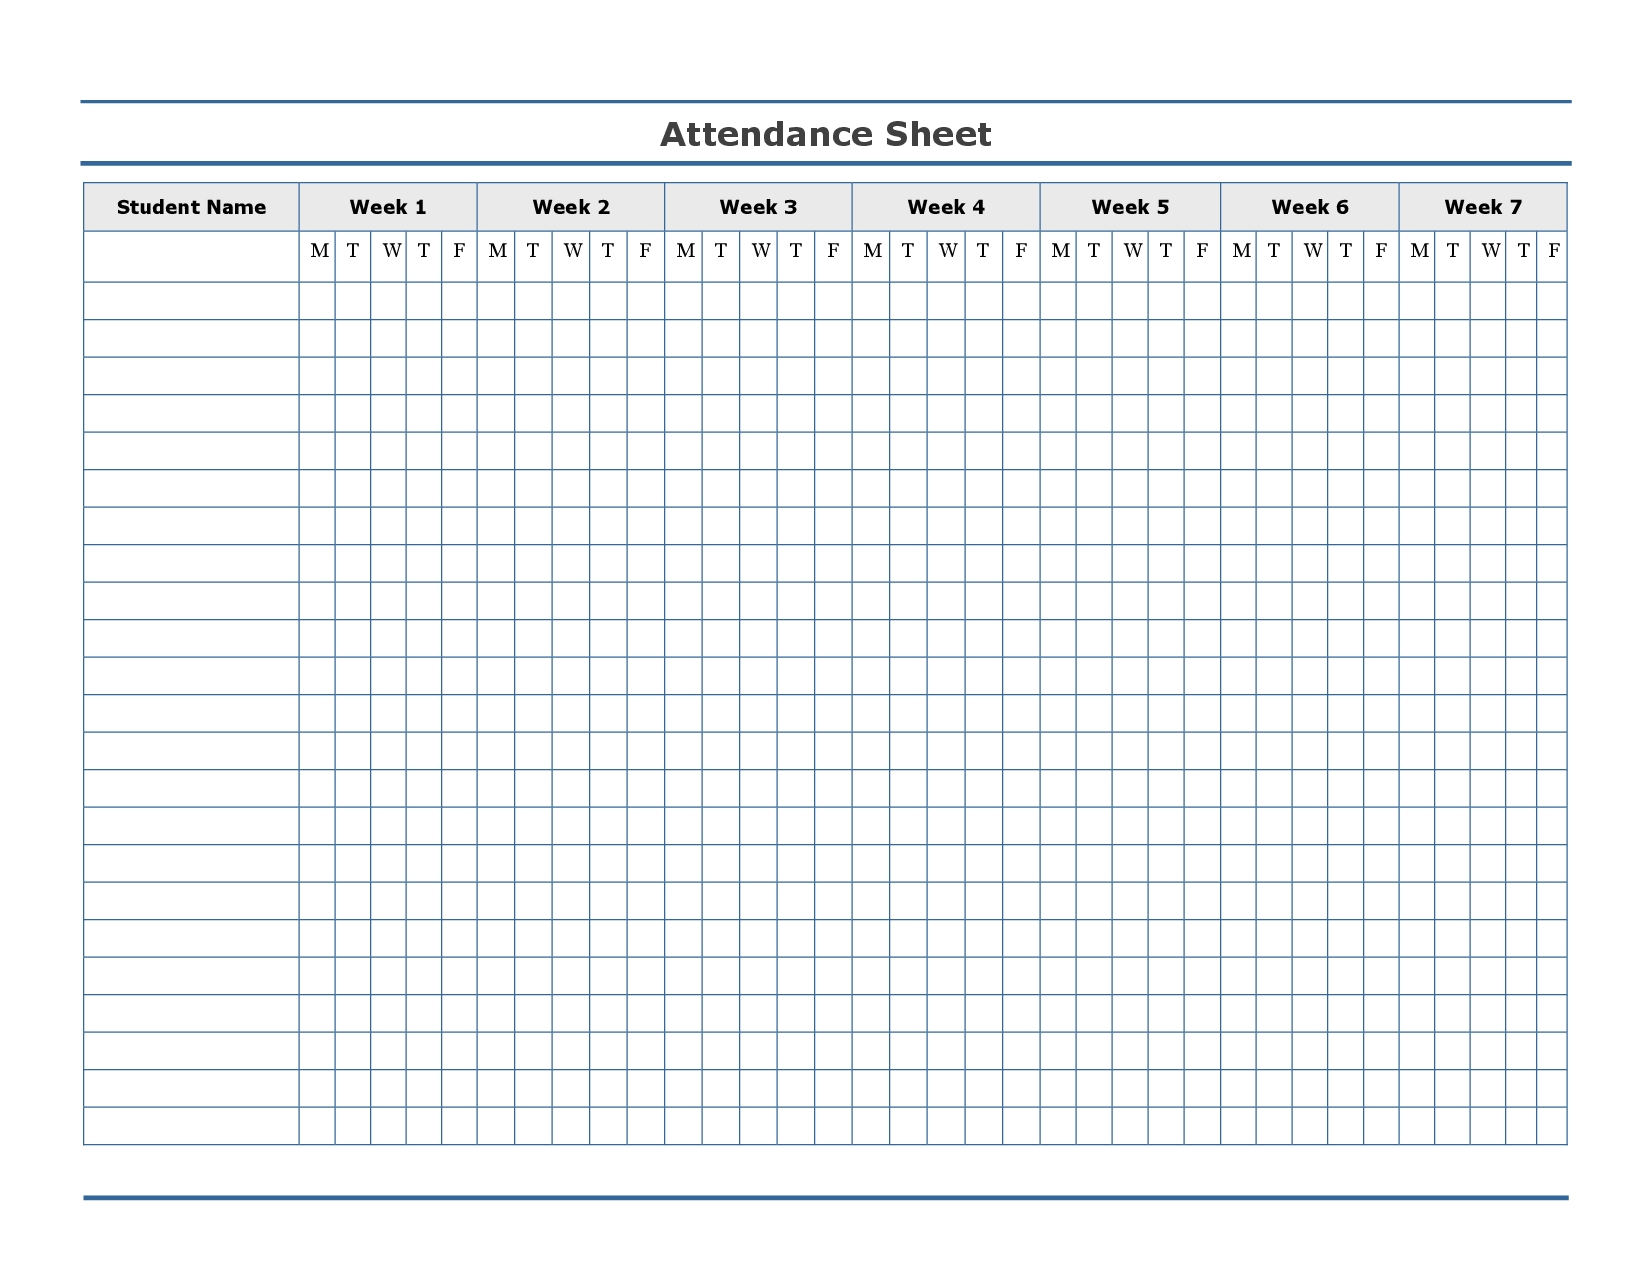 Attendance Sheet Late Free Printable E2 80 A6 Education Sign-Monthly Sign Up Sheet Templates